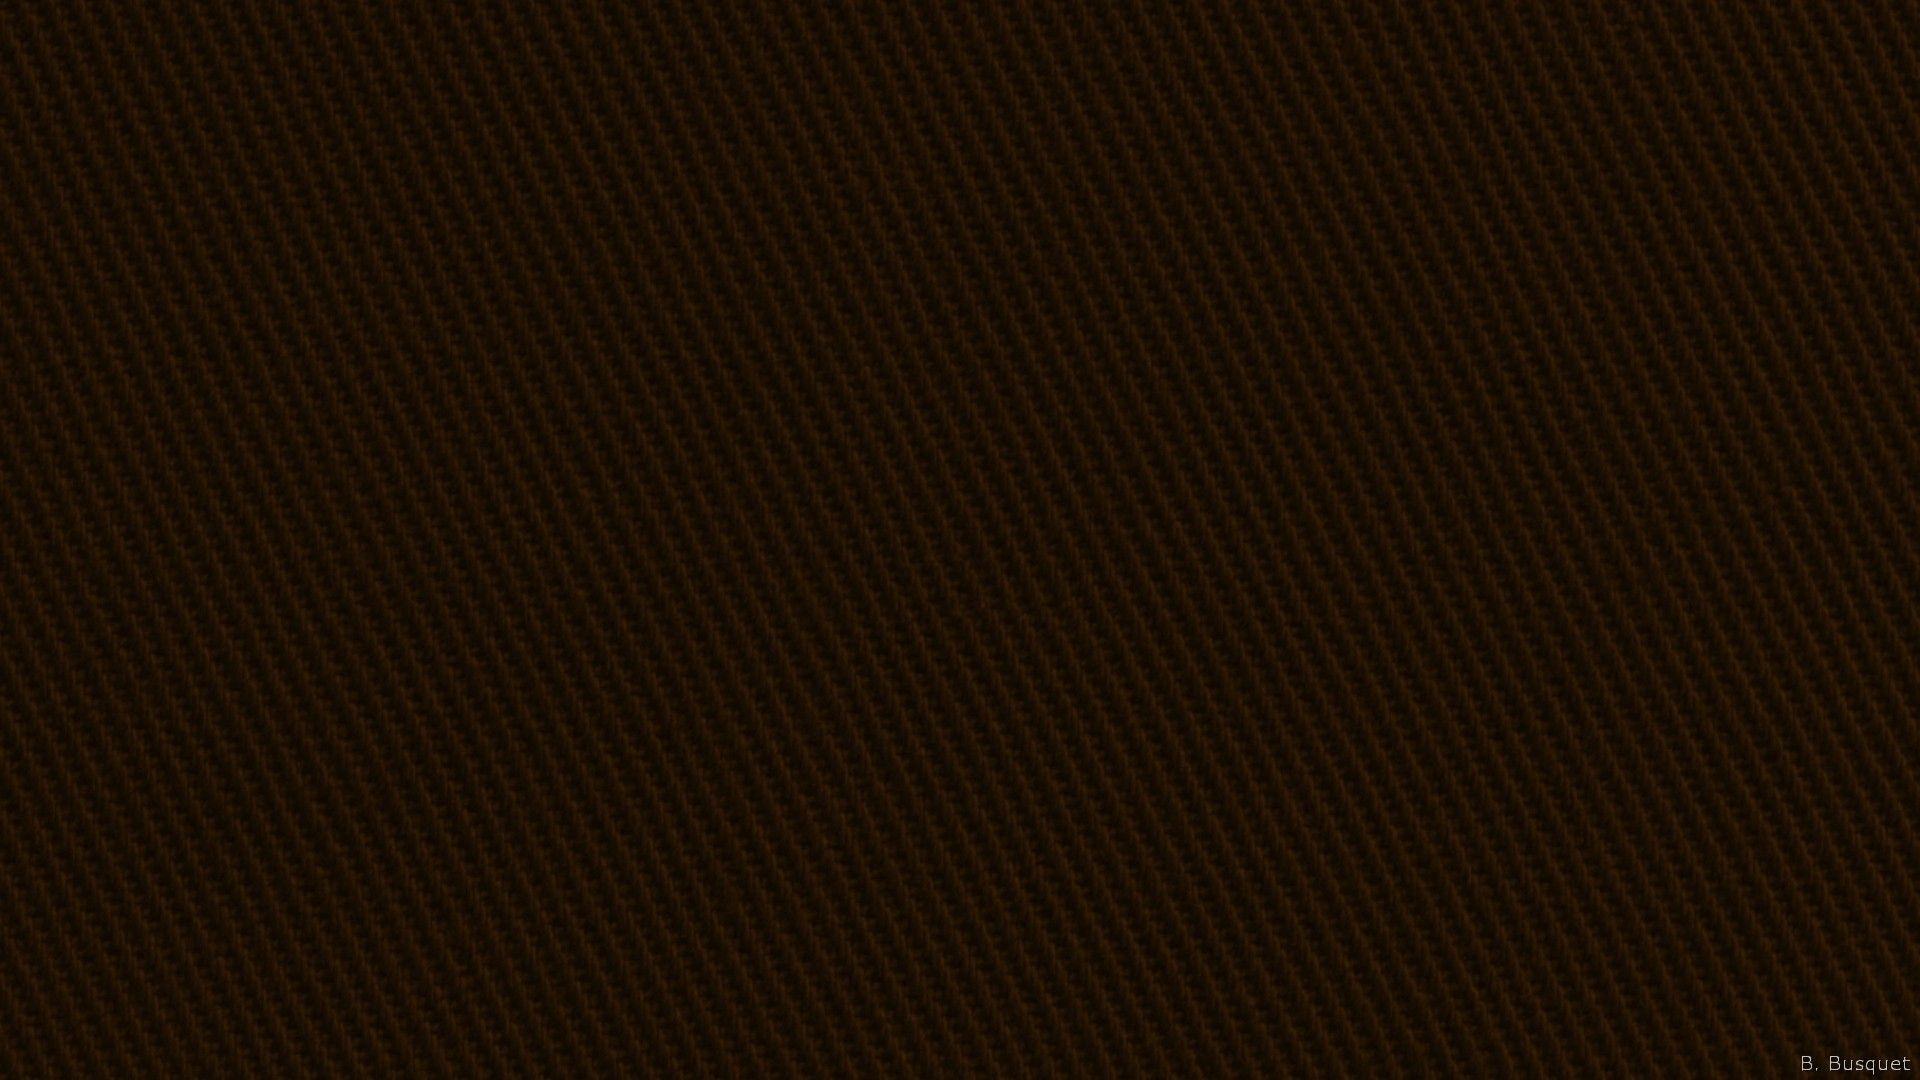 1920x1080 Brown Wallpapers and Background Images - stmed.net